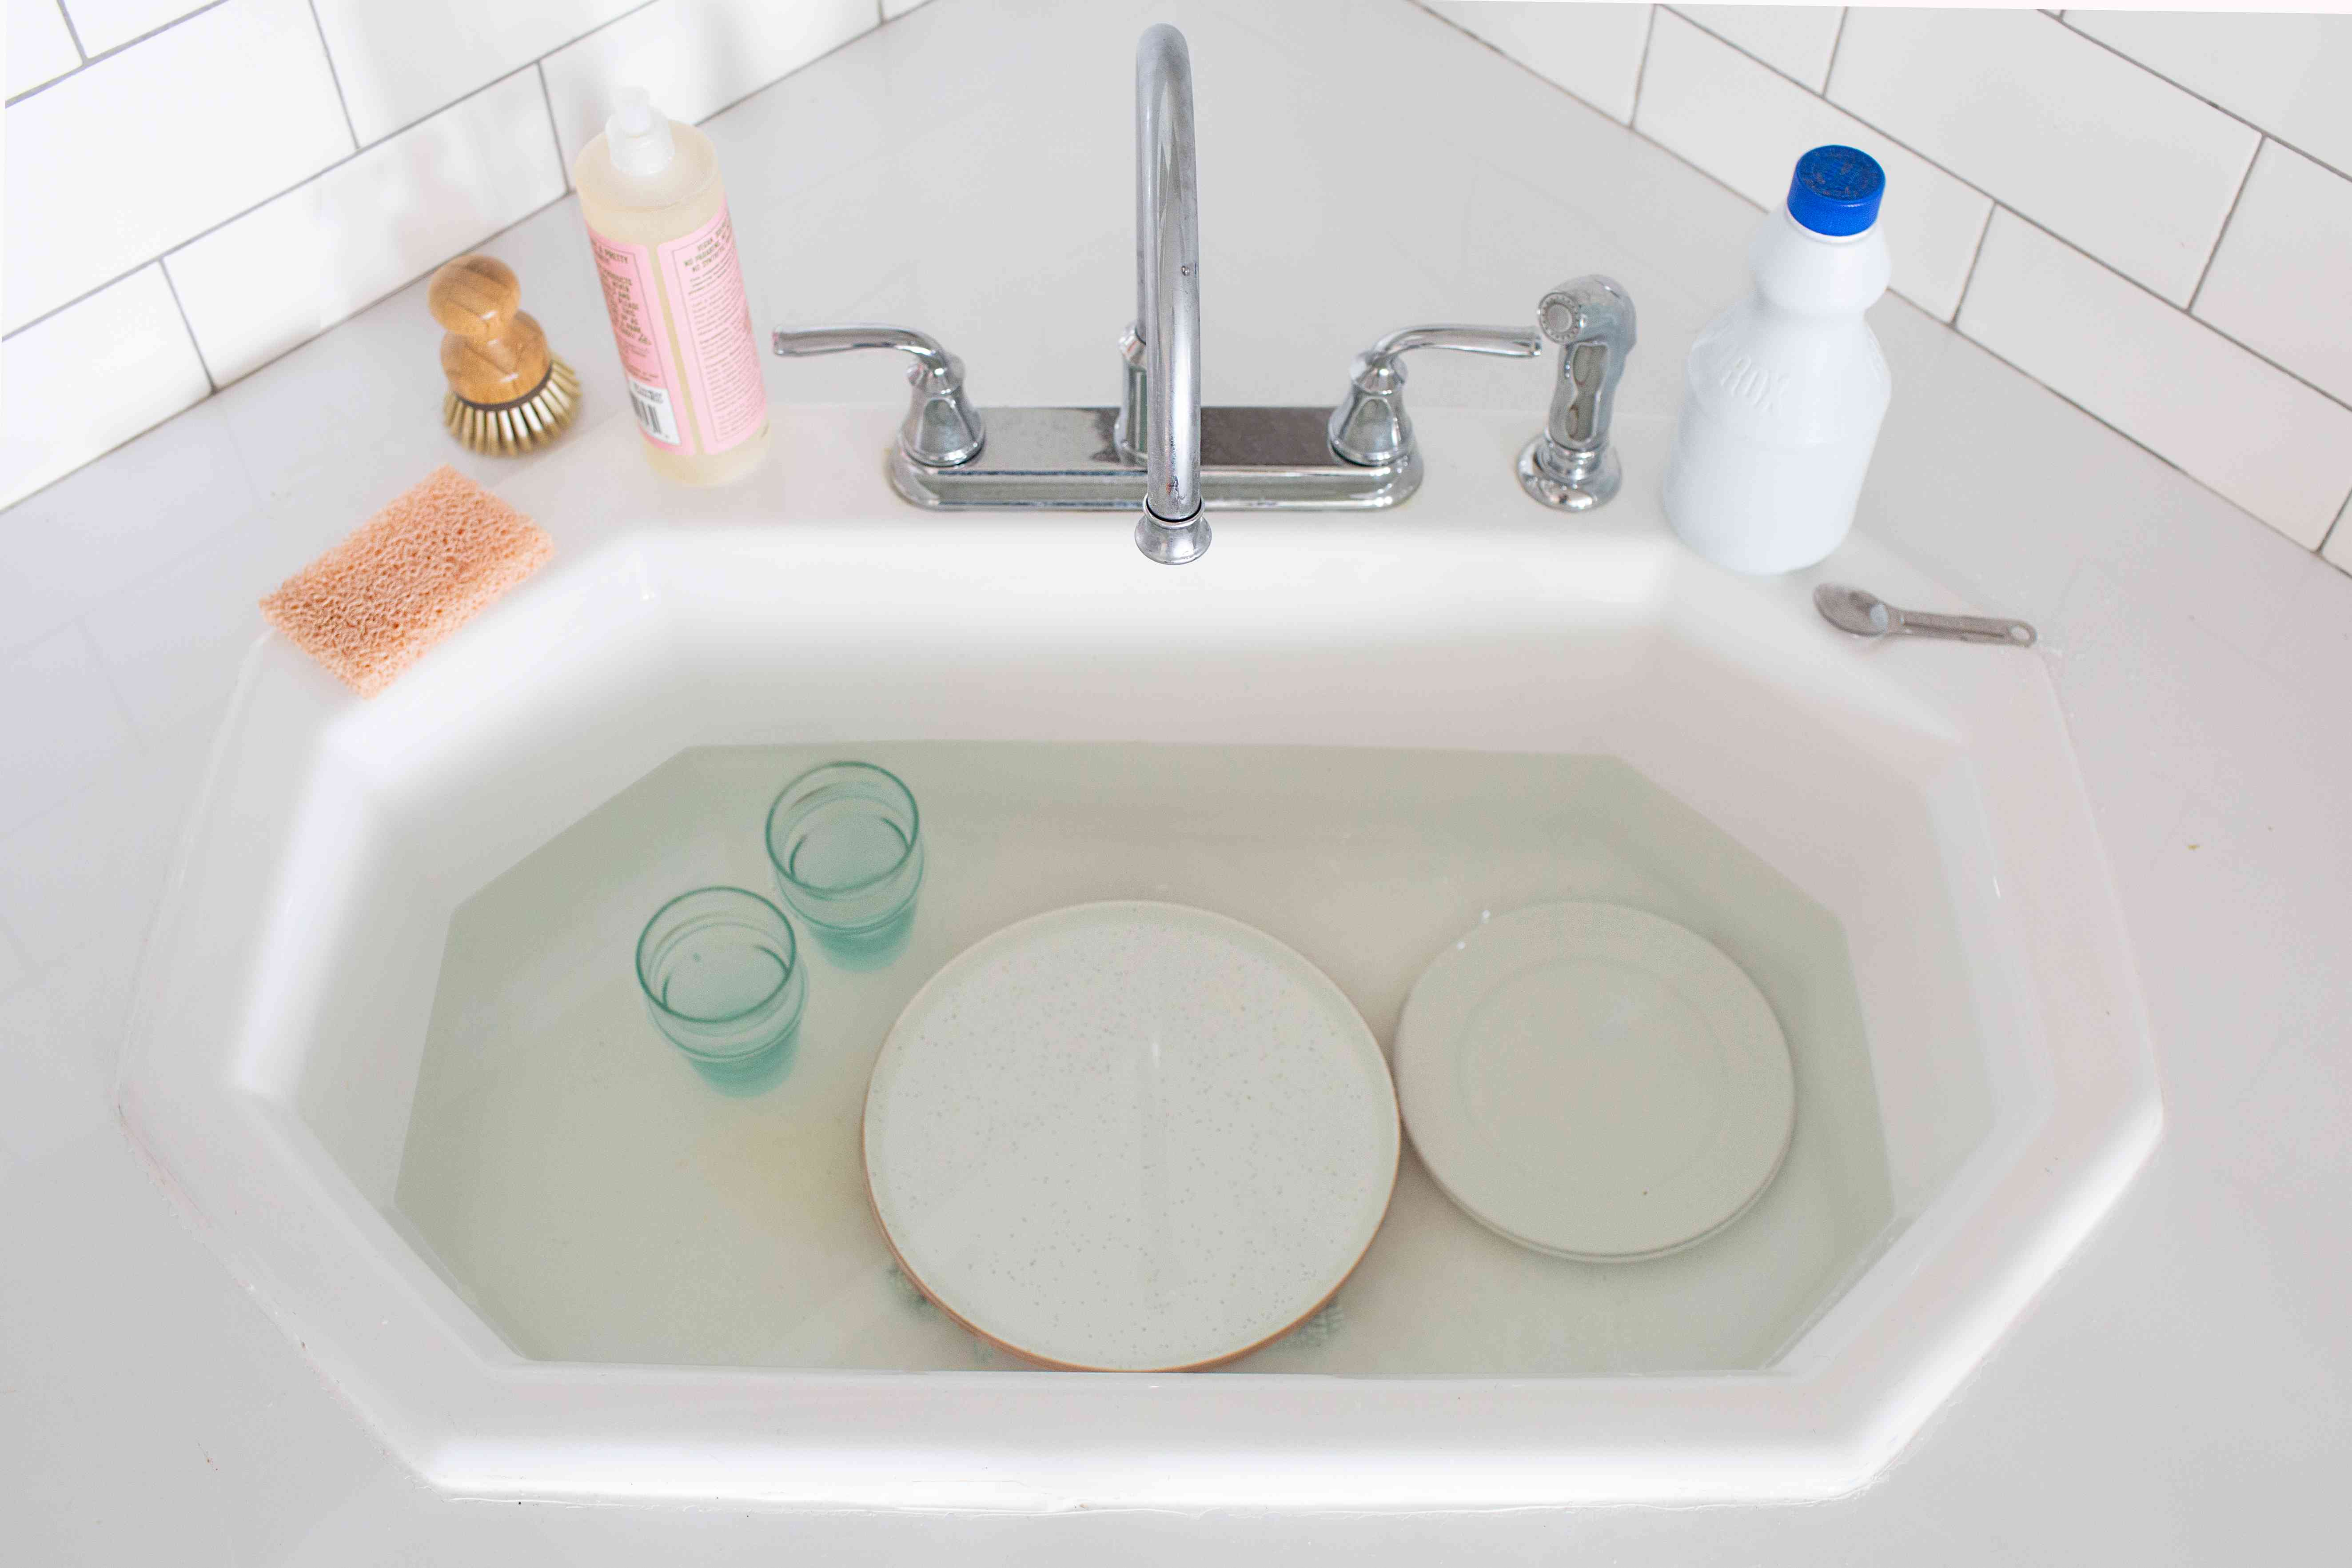 dishes submerged in a bleach solution